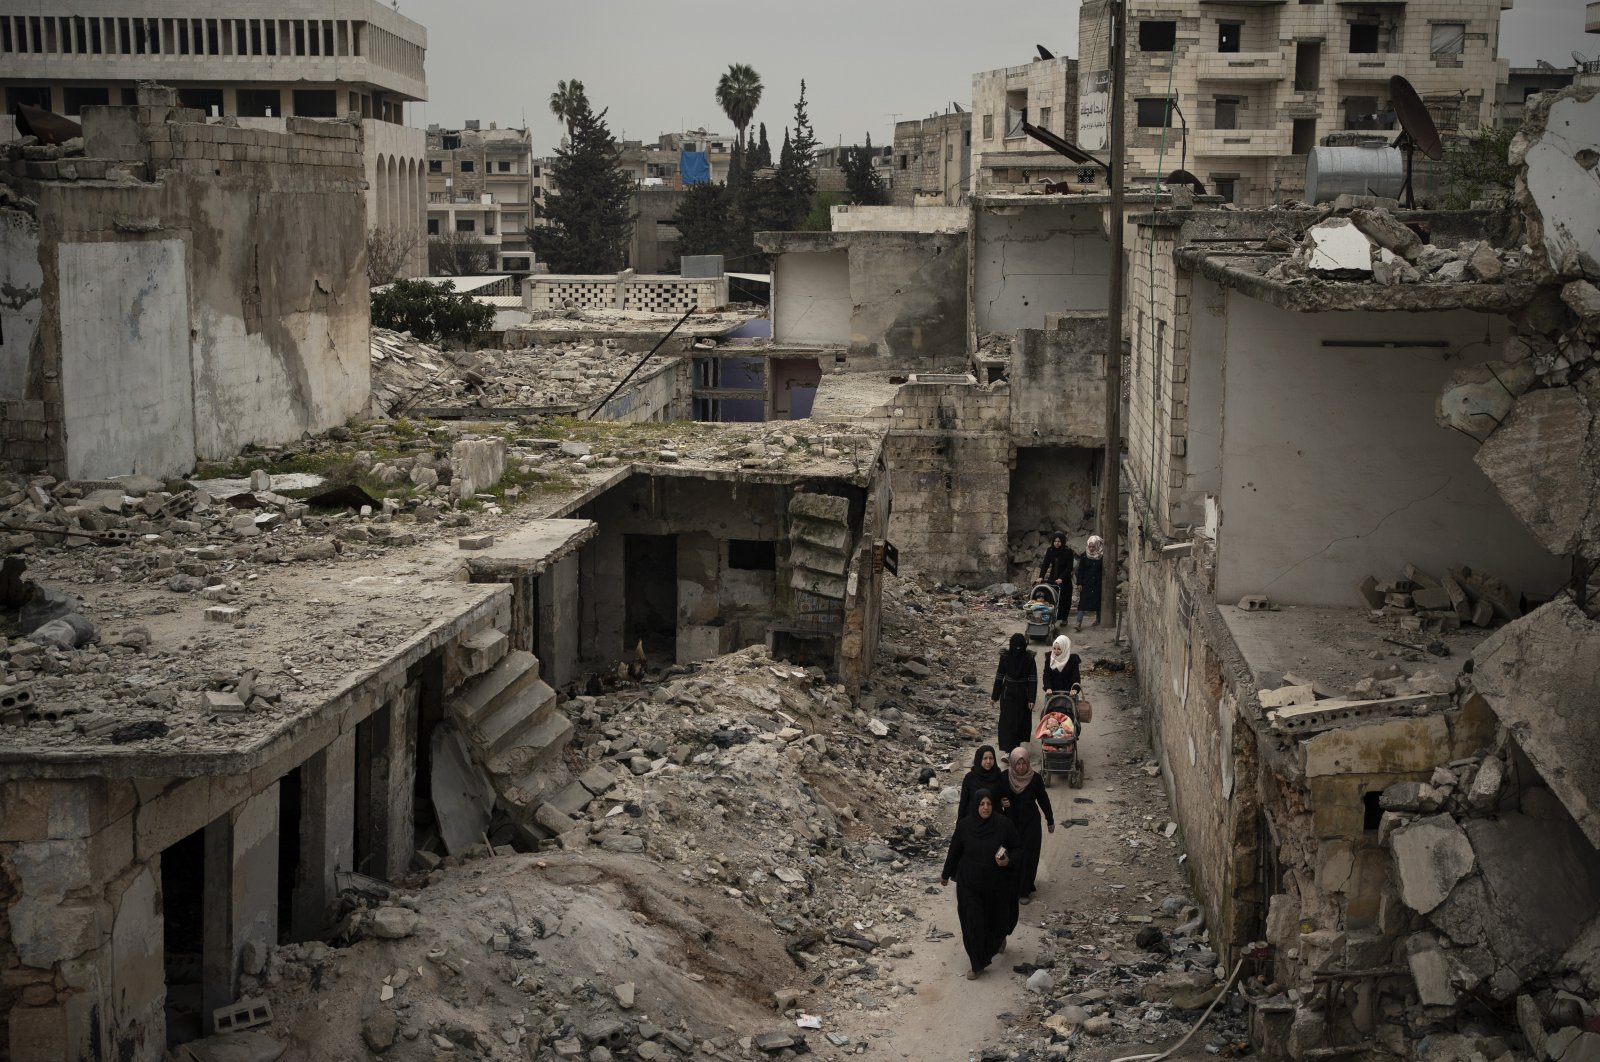 Women walk in a neighborhood heavily damaged by airstrikes in Idlib, Syria, Thursday, March 12, 2020. (AP)